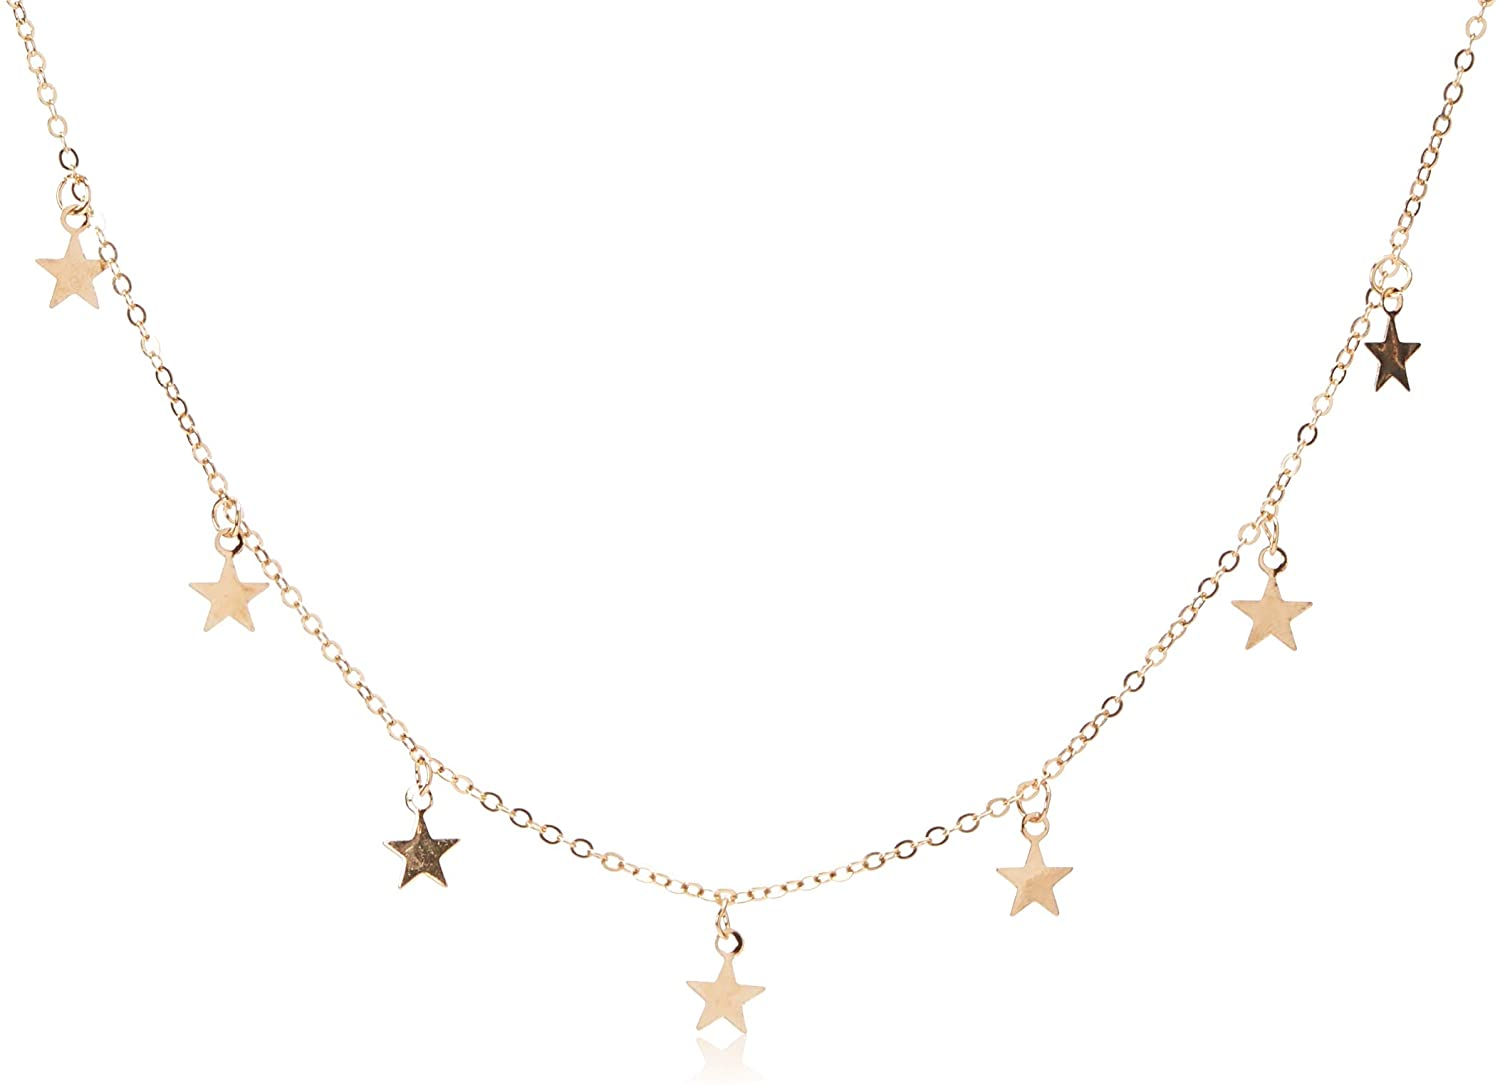 Dolland Lucky Star Choker Necklace Pendant Tassels Chain Statement Necklace for Women Girls,Gold,Adjustable